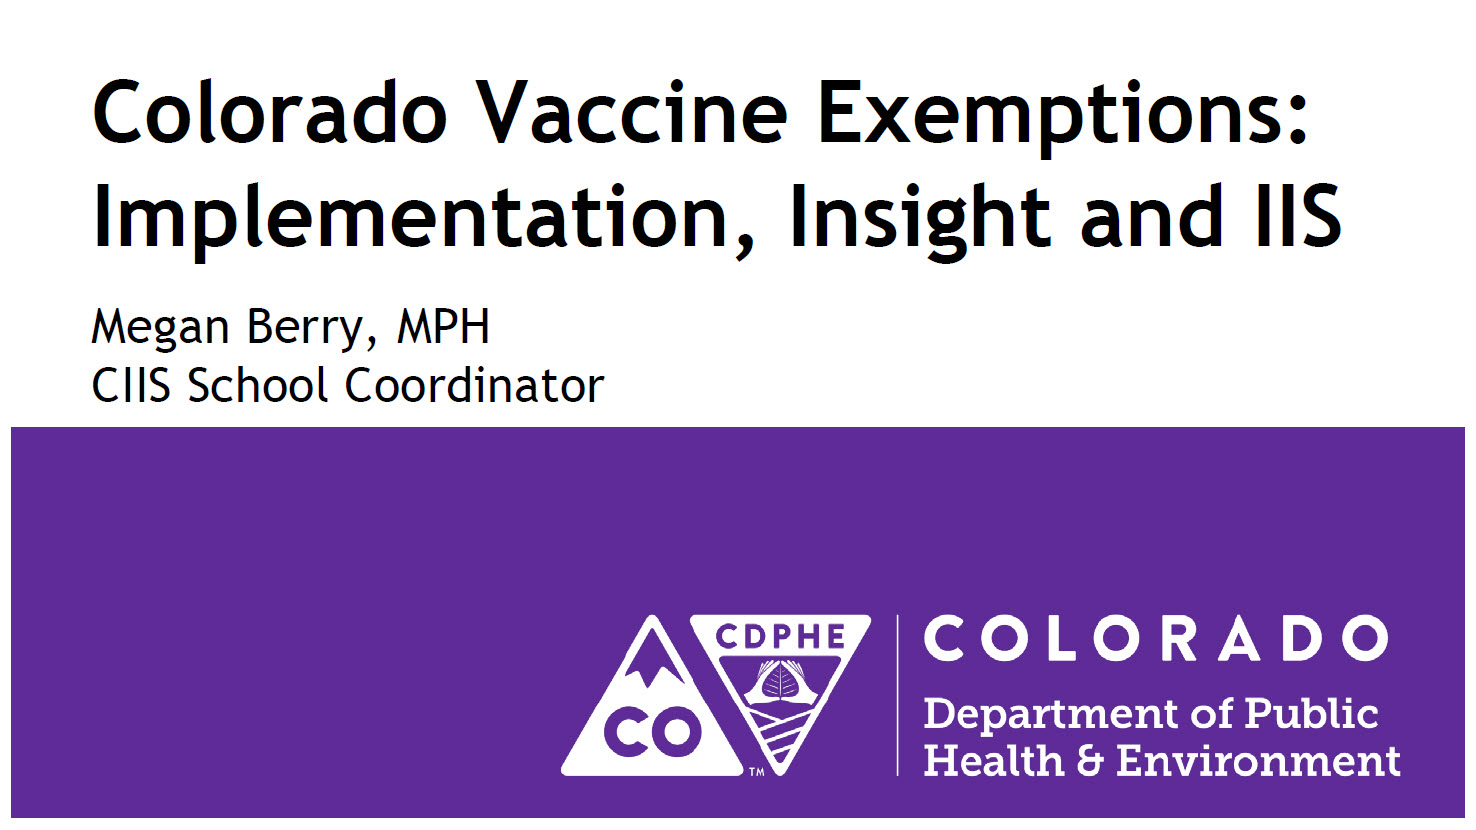 Colorado Vaccine Exemptions: Implementation, Insight, and IIS